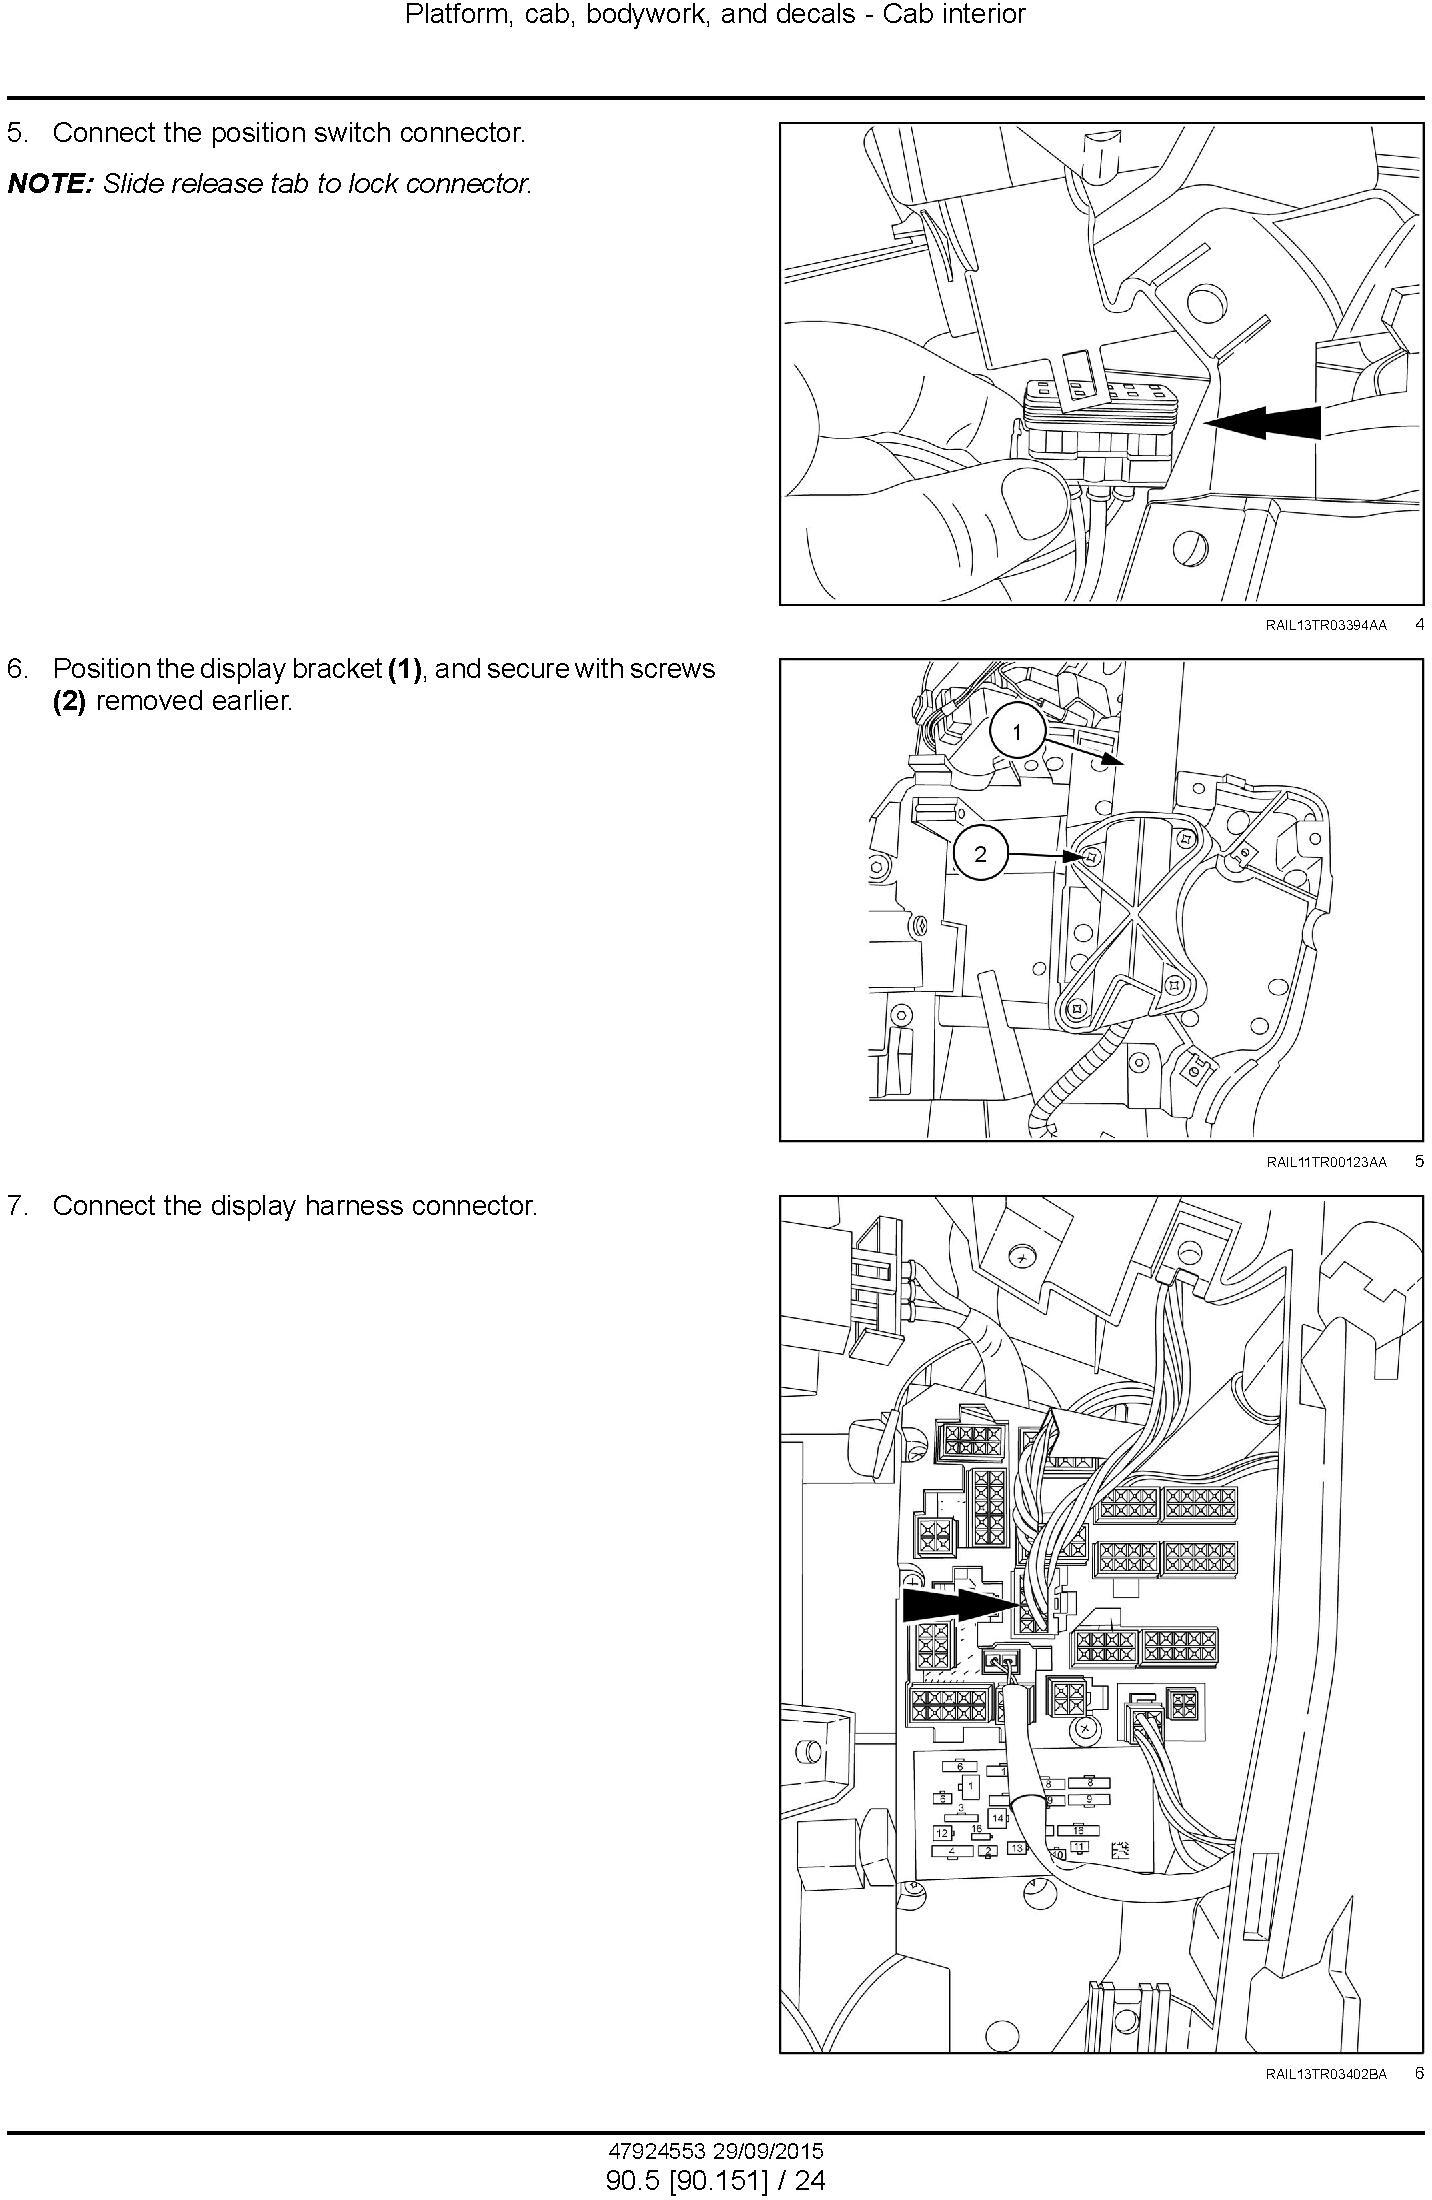 New Holland T9.435, T9.480, T9.530, T9.565, T9.600, T9.645, T9.700 Tractor Service Manual (Europe) - 1